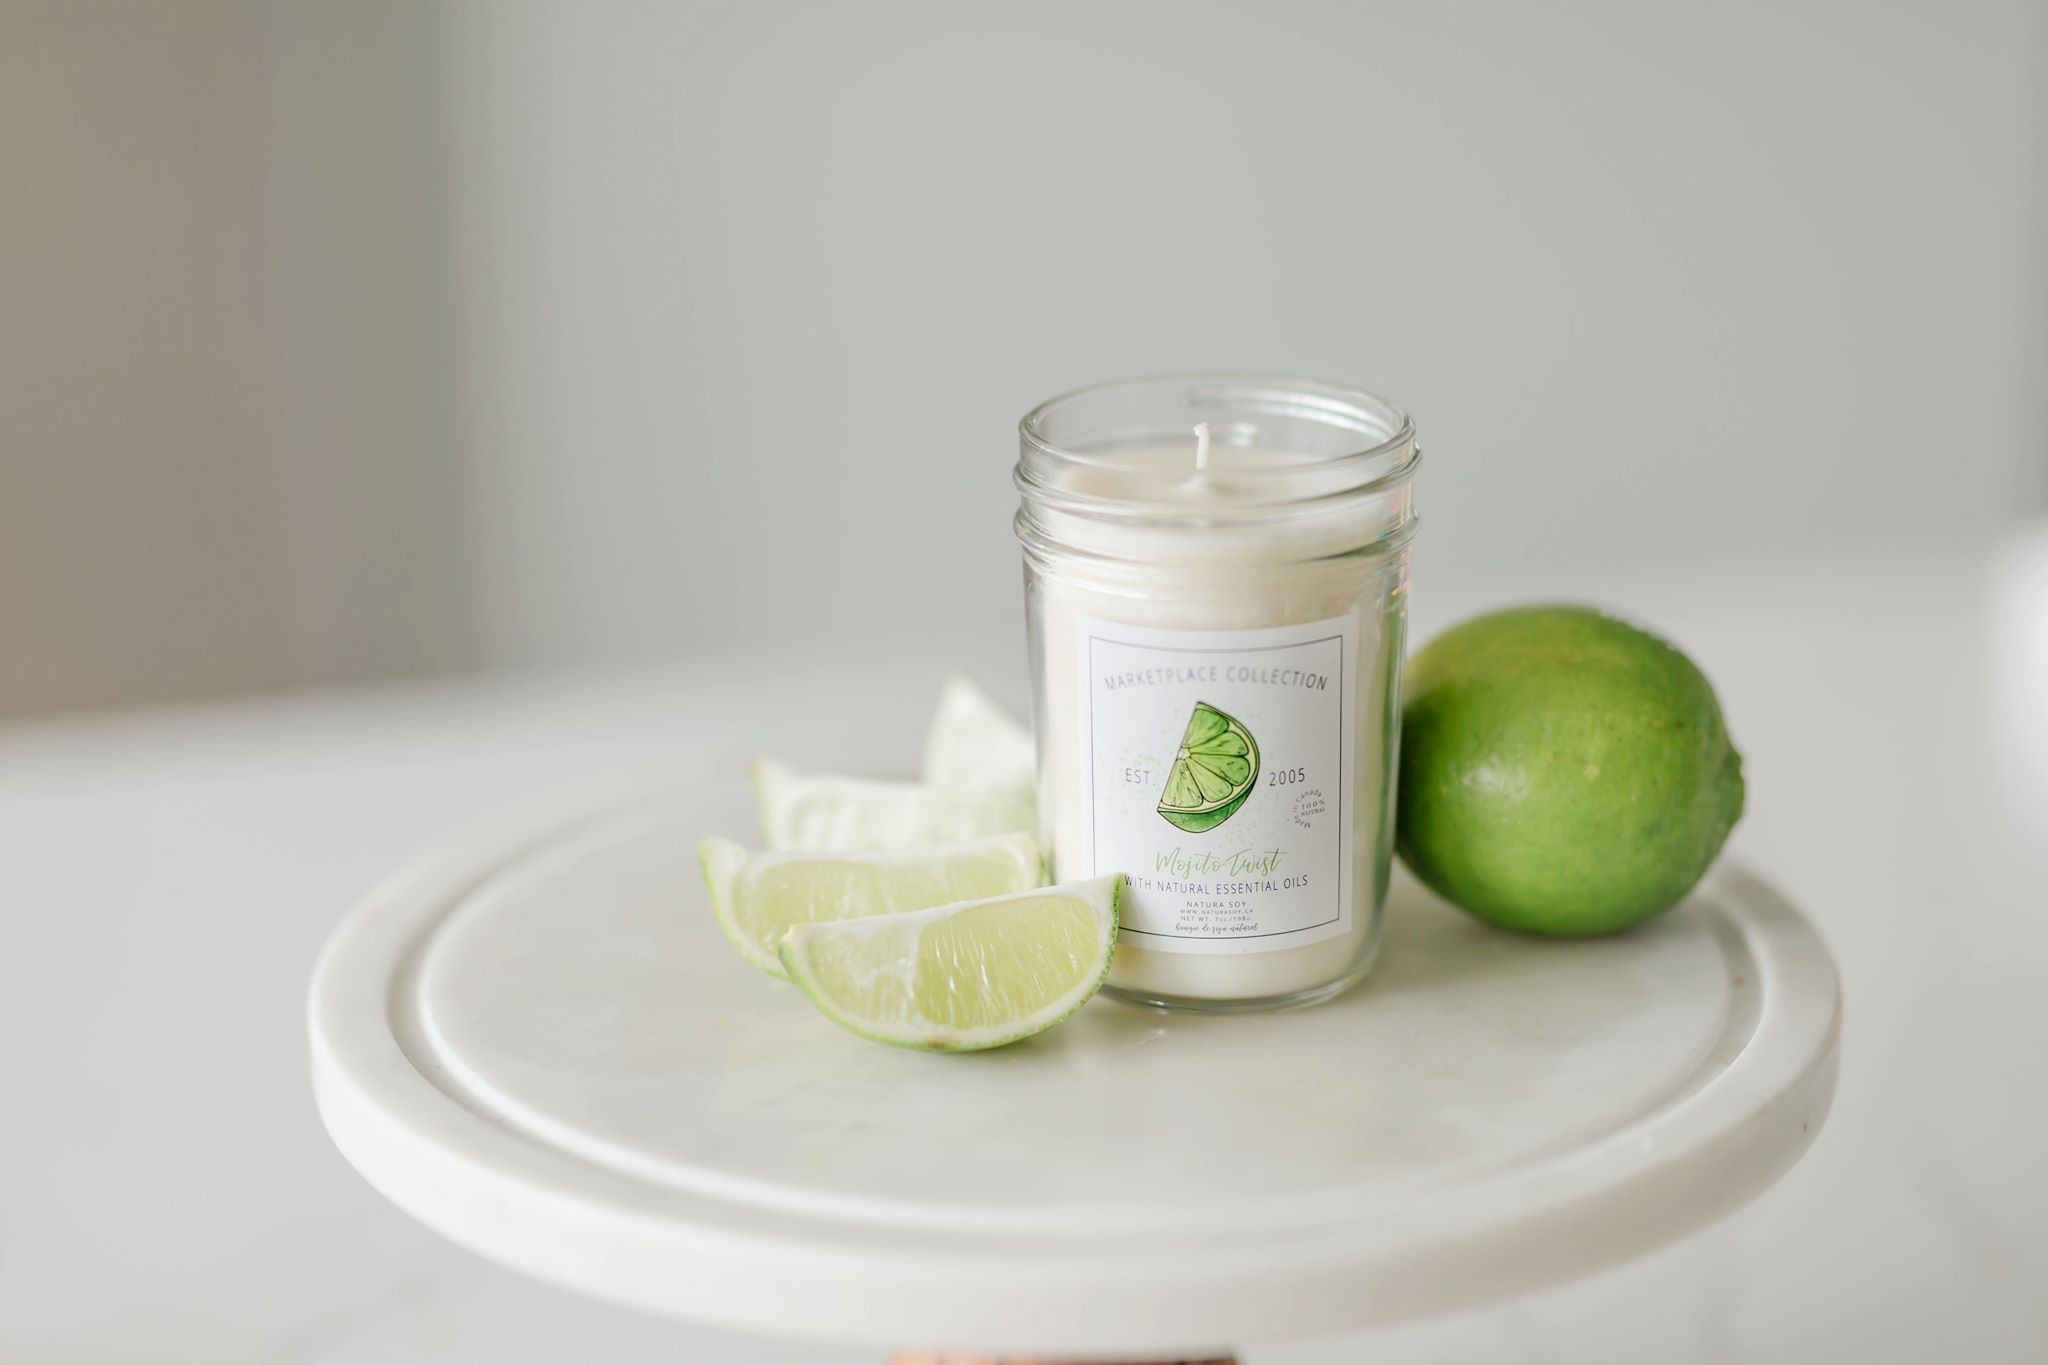 Mojito Twist A sunny citrus blend of kaffir lime, Italian bergamot and lemongrass mingled together with sprigs of fresh mint, bay leaf, anise and geranium.